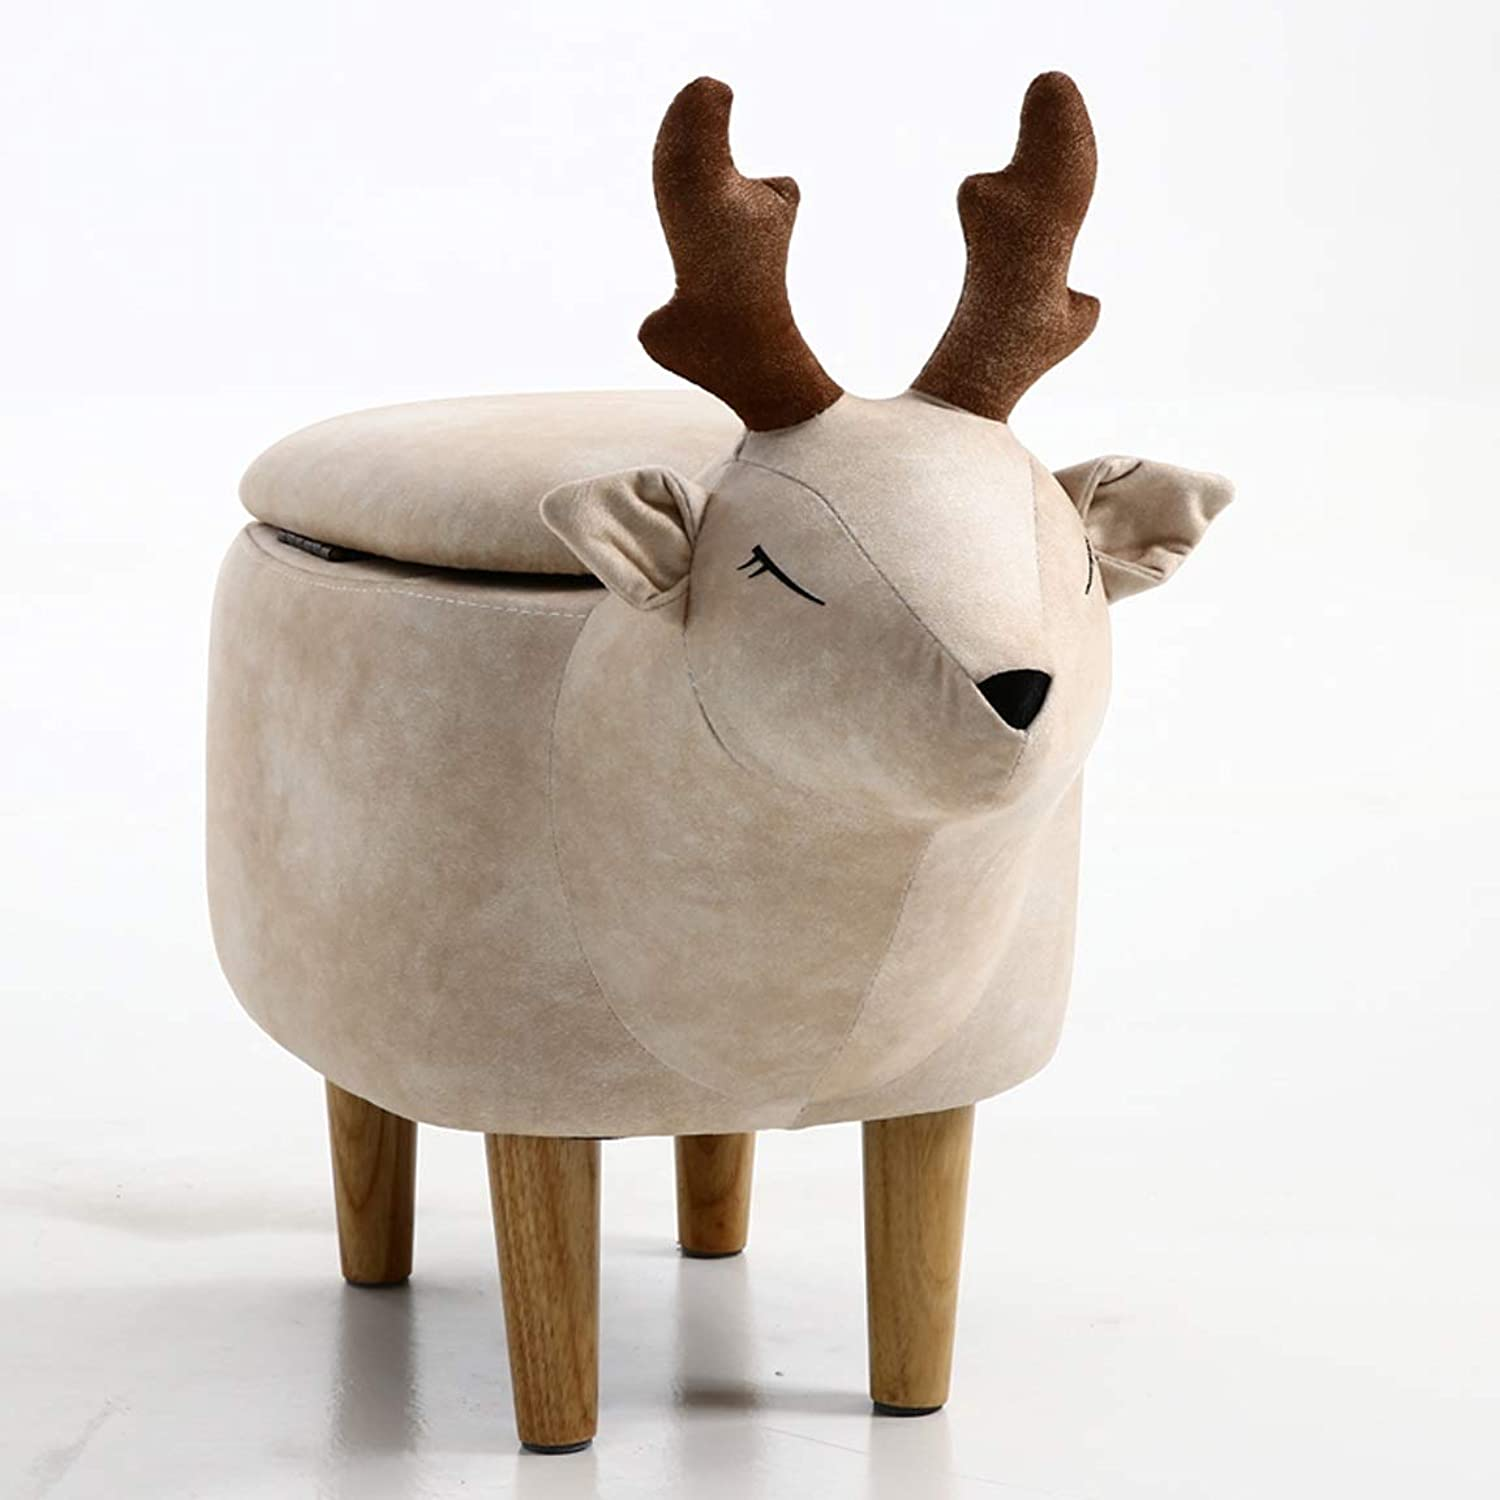 Carl Artbay The Deer Changes The Footstool Wears The Footstool Enters The Door The Low Stool Animal Shelves The Footstool Strong and Practical